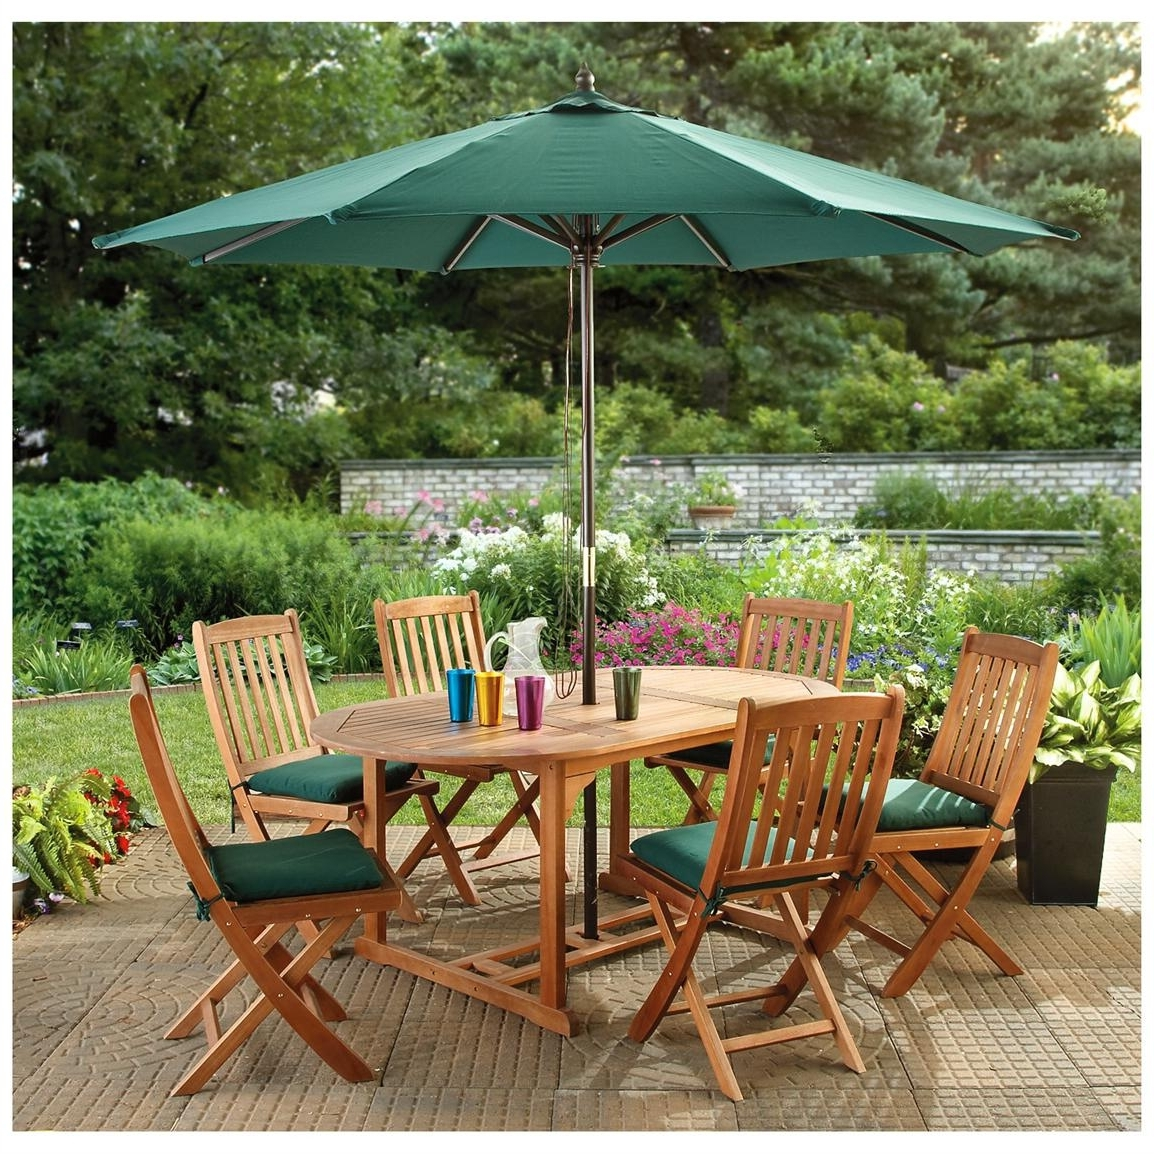 Well Liked Round Outdoor Dining Table With Umbrella Patio Furniture Sets For 6 Pertaining To Patio Furniture Sets With Umbrellas (View 7 of 20)